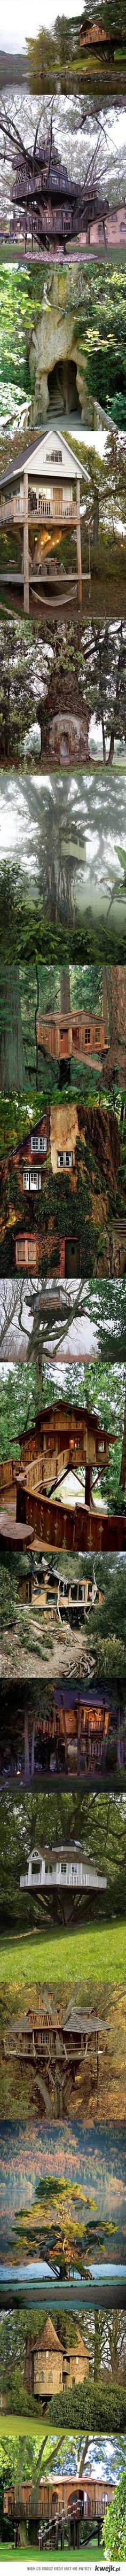 Tree houses- amazing